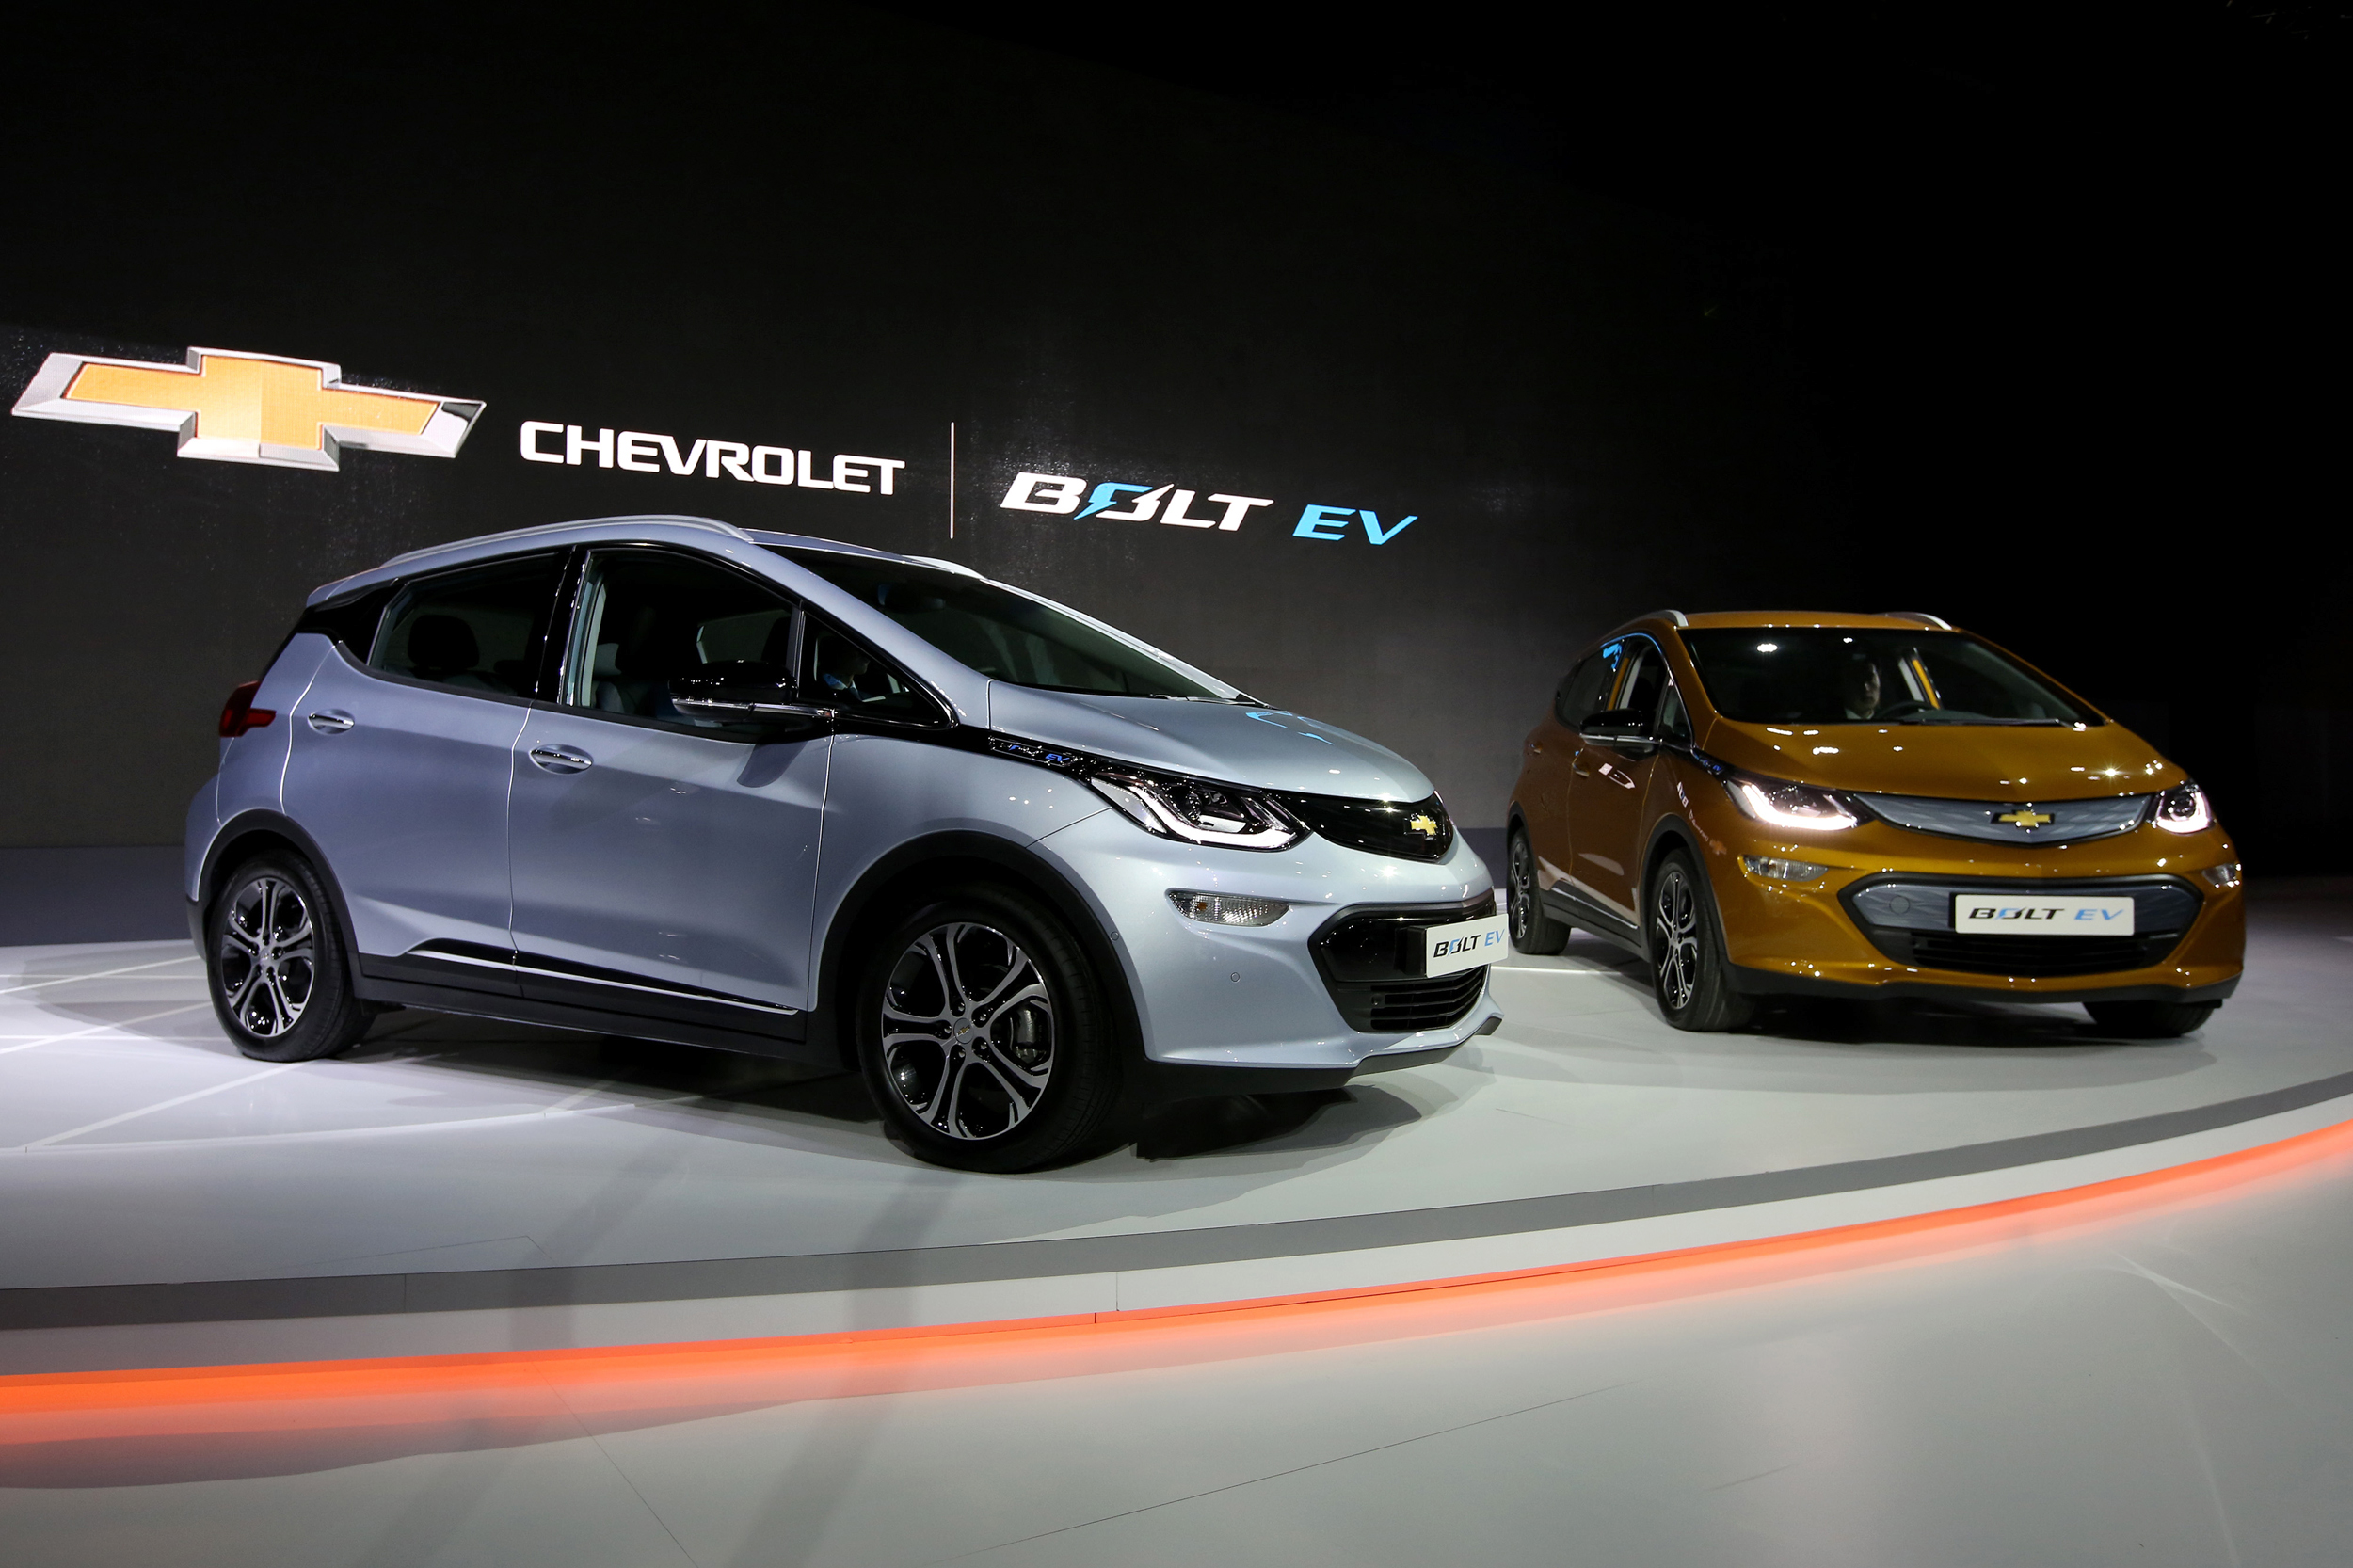 GM's $2 billion Chevy Bolt fire recall casts shadow over electric vehicle market